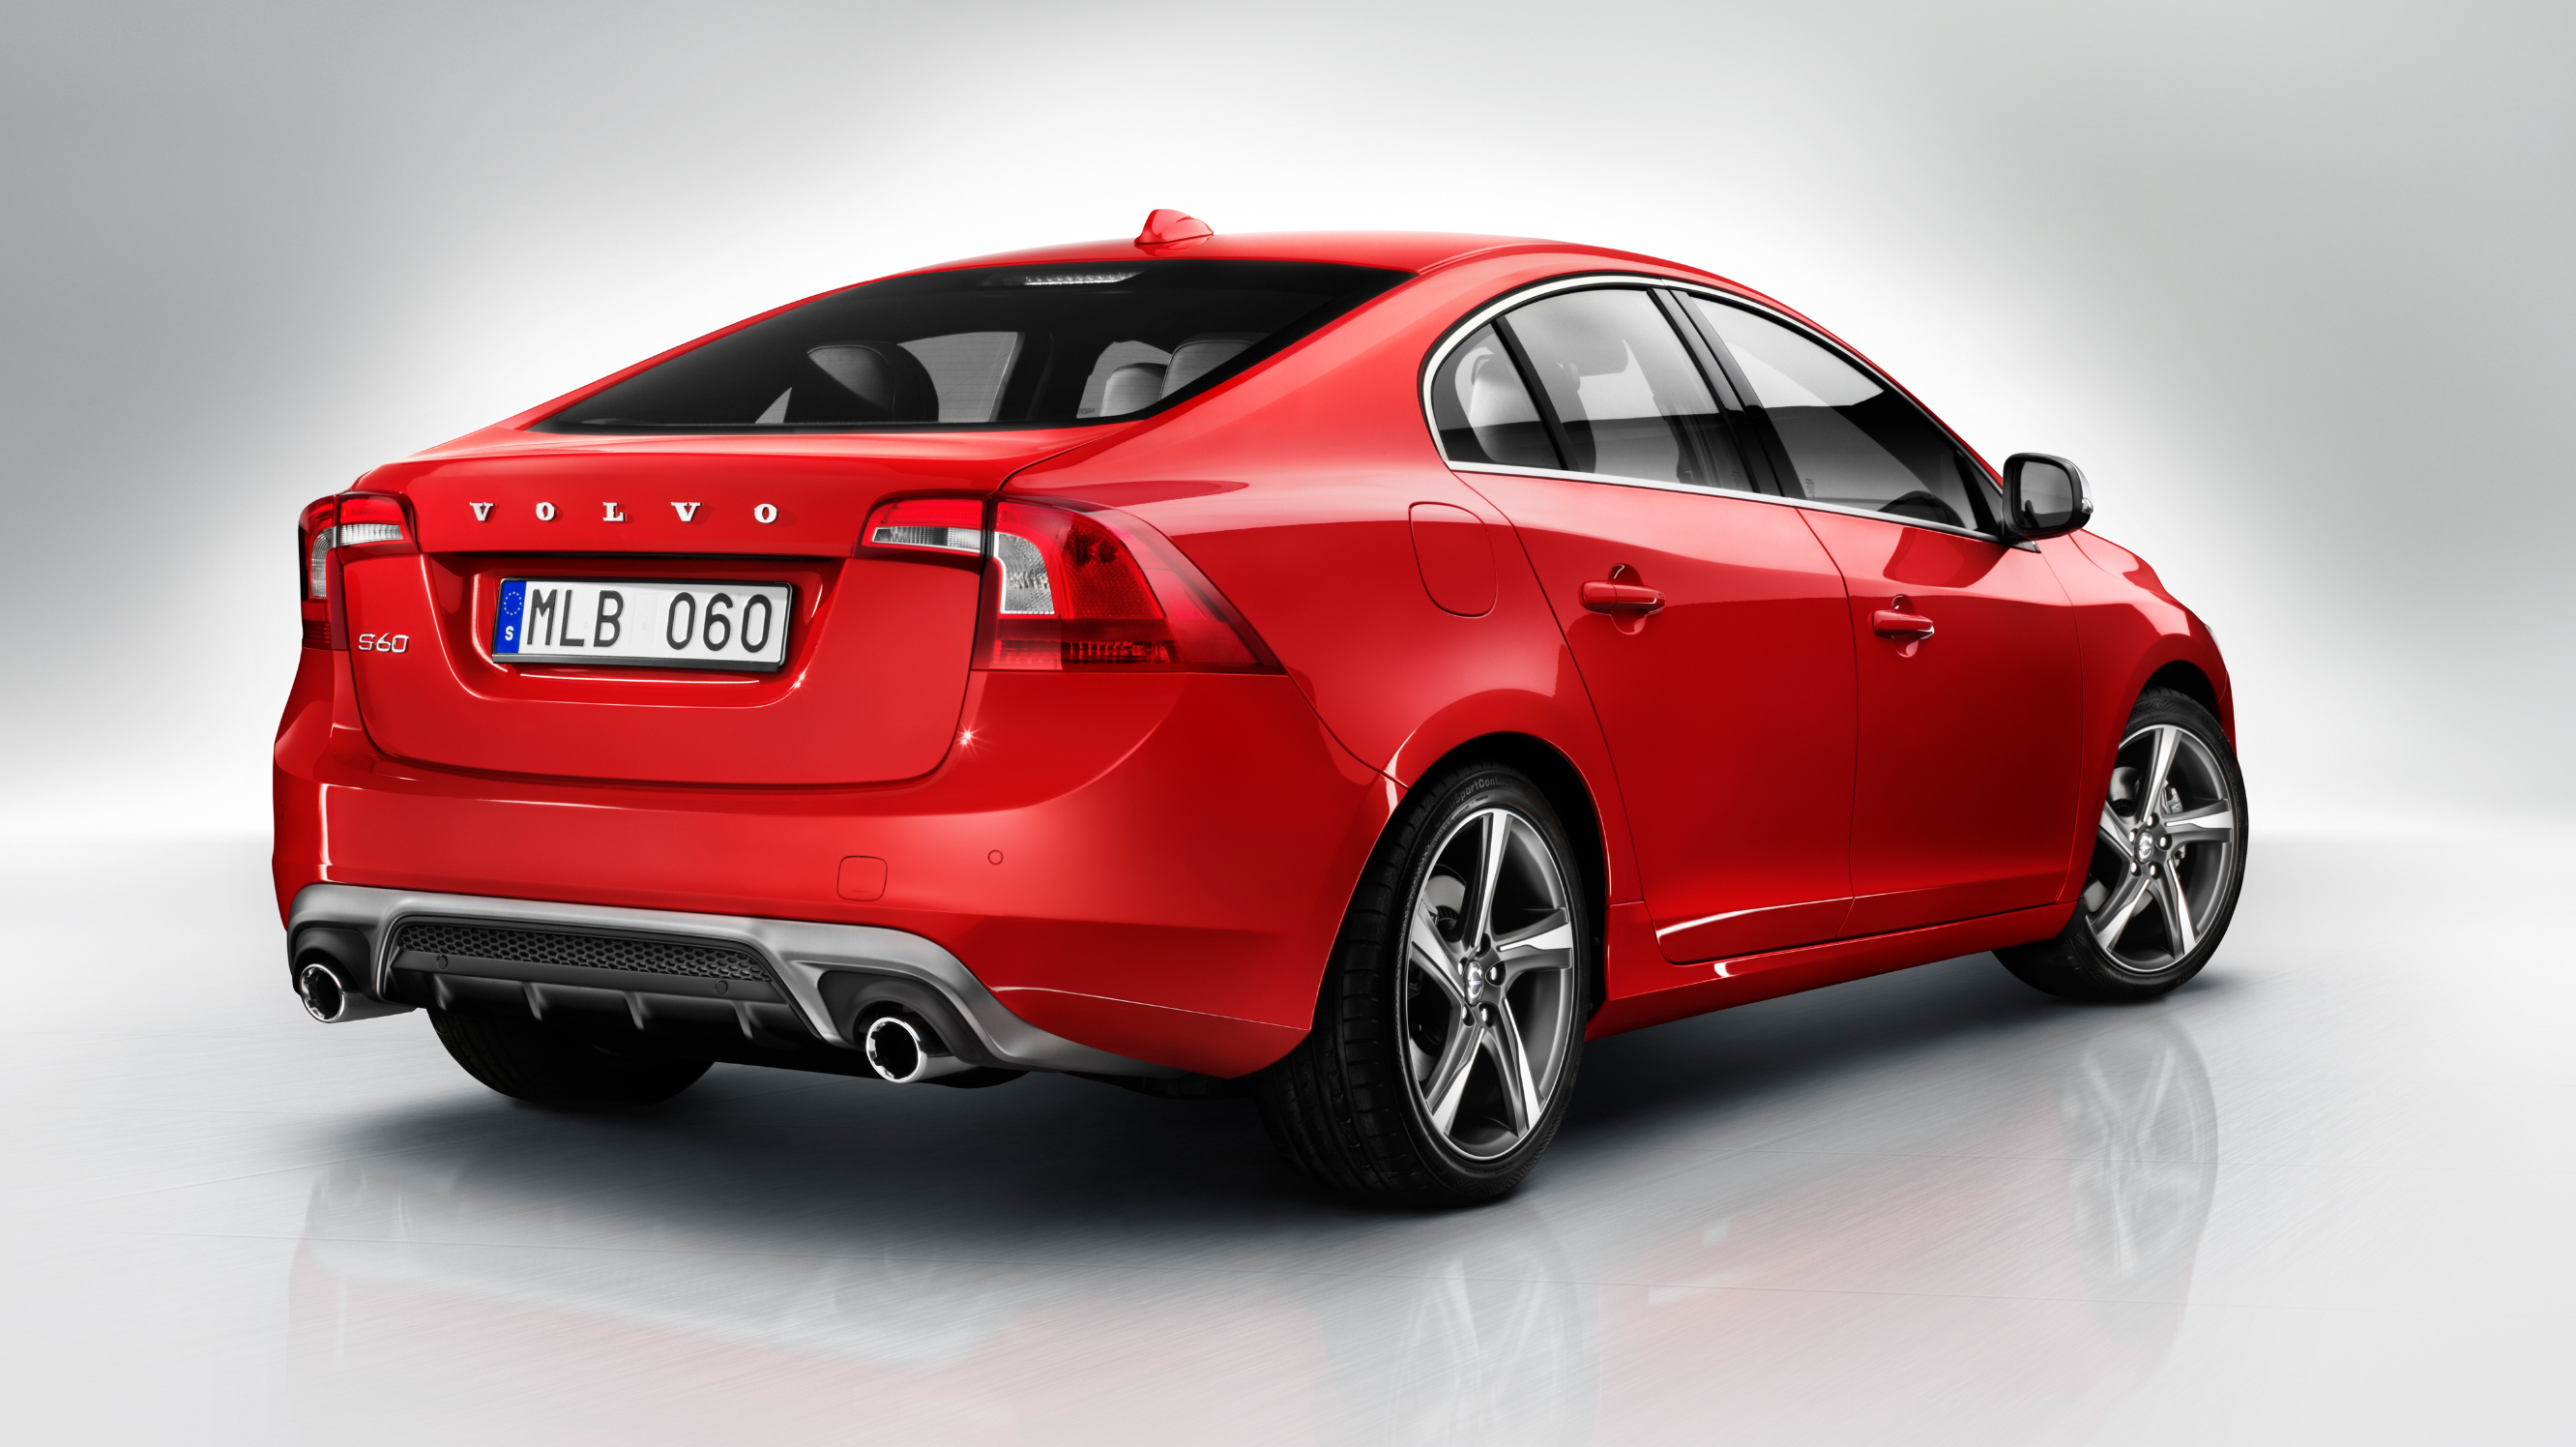 twin and cars volvo rear are design passion distinctive a specs rs r review inch photos exhaust sporty within baffle red incorporated